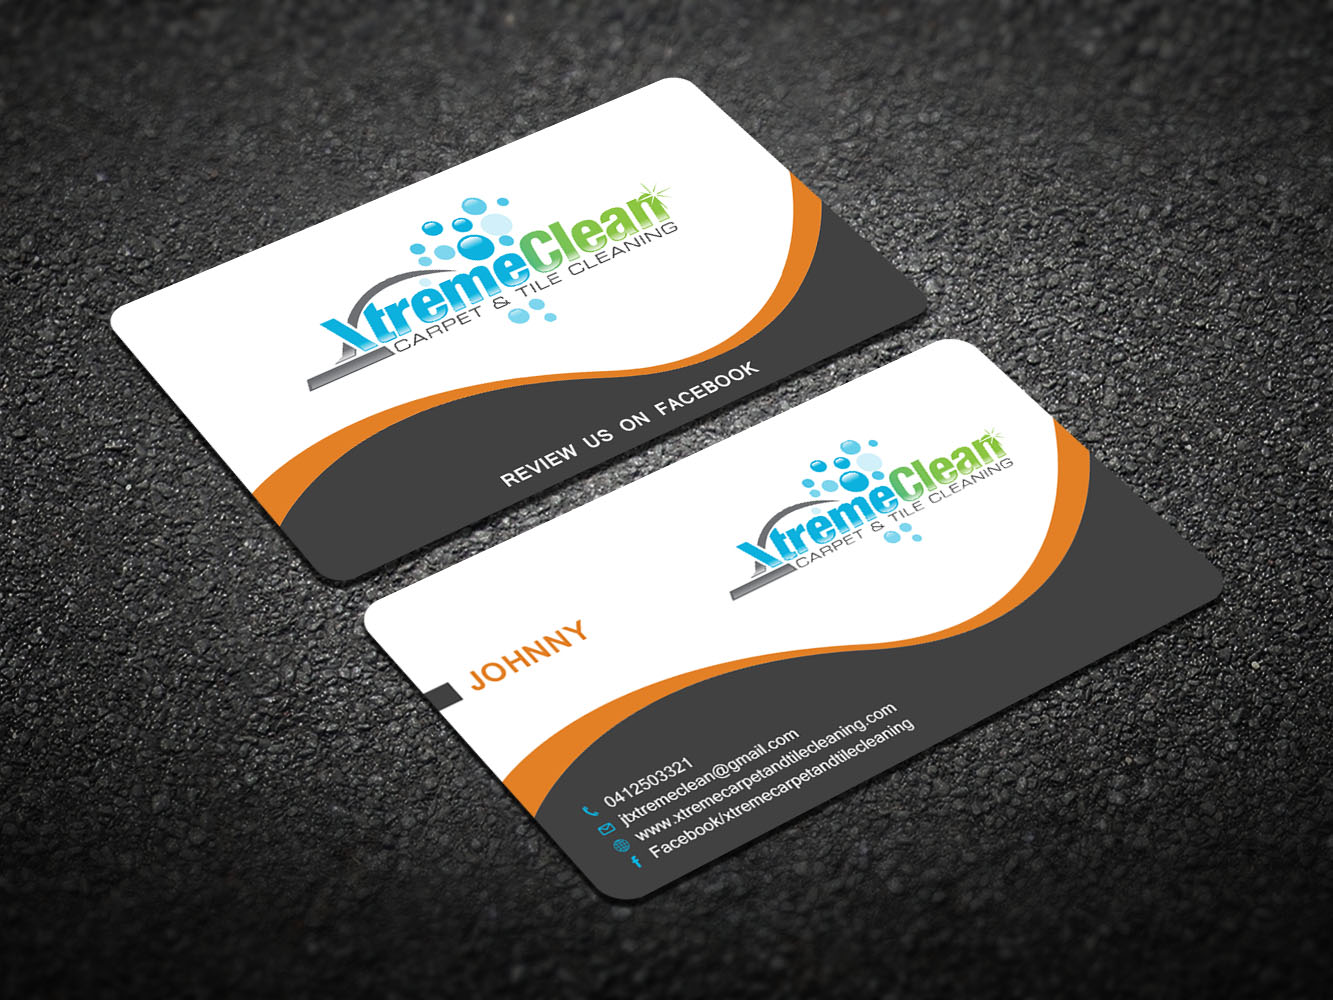 Modern personable business business card design for xtreme carpet business card design by design xeneration for xtreme carpet and tile cleaning design reheart Image collections